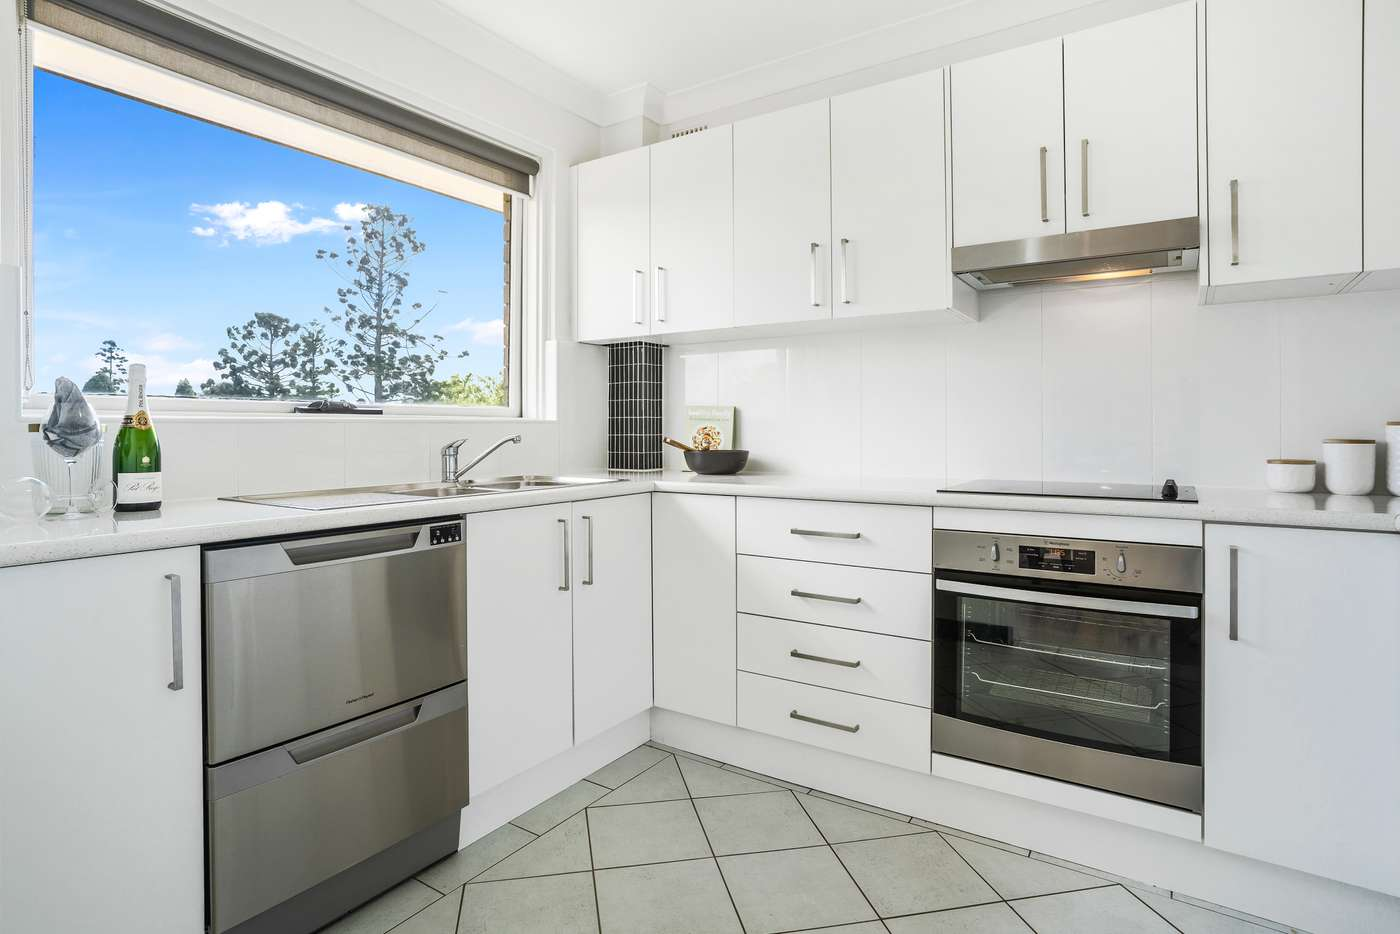 Sixth view of Homely apartment listing, 9/11-13 Ormond Street, Ashfield NSW 2131